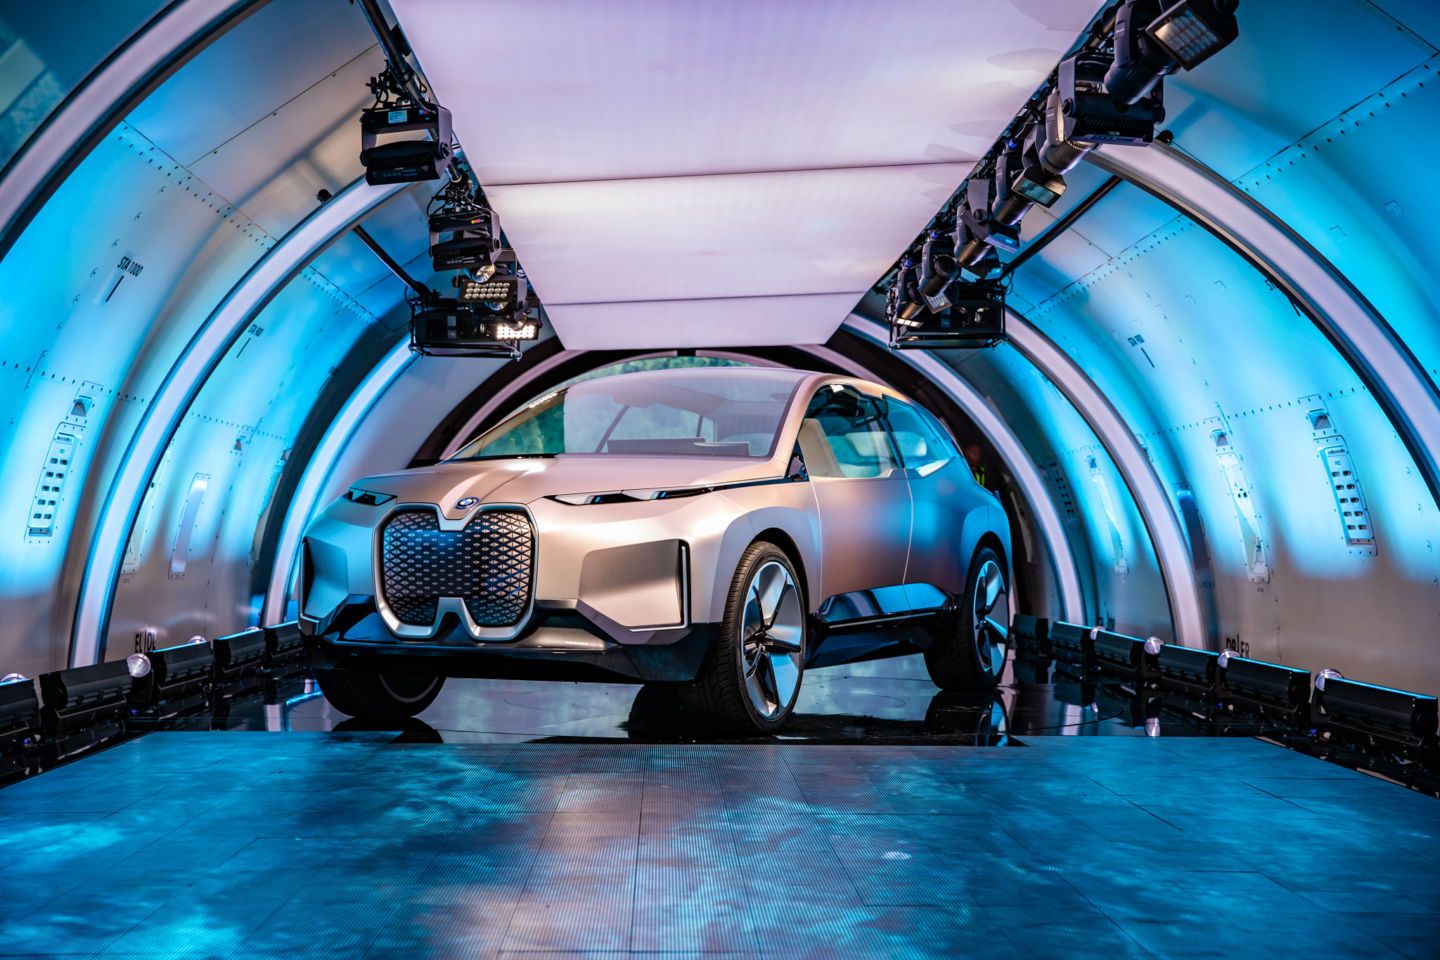 Have you seen electric BMW iNext, which will go on sale in 2021?